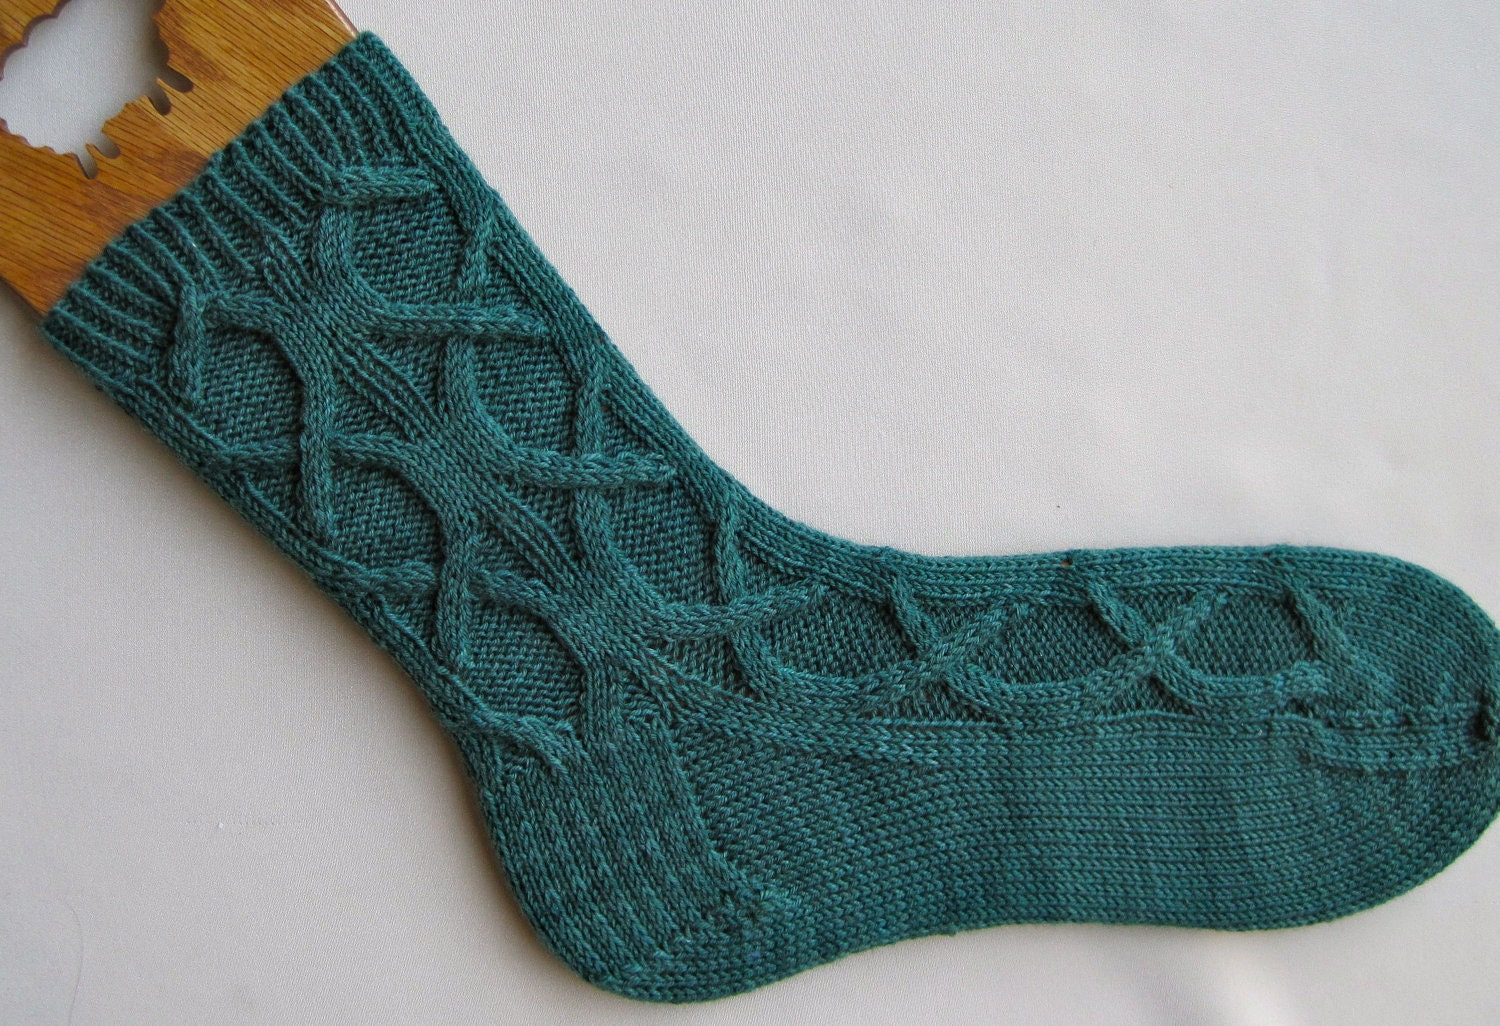 Socks Knitting Pattern : Knit Sock Pattern: Celtic Cable Socks by WearableArtEmporium